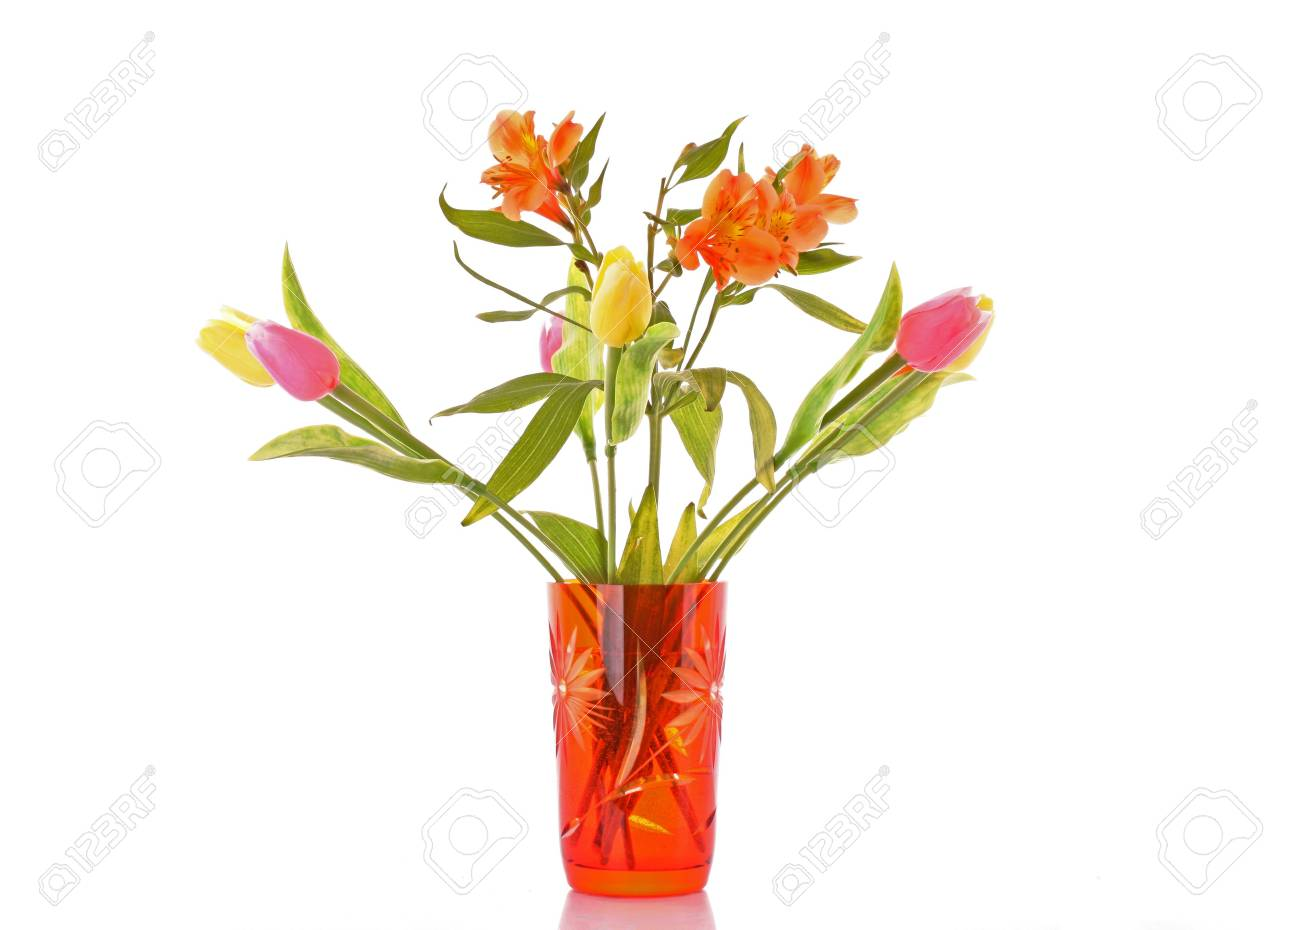 Flowers of lily and tulips in a vase on a white background Stock Photo - 6801656